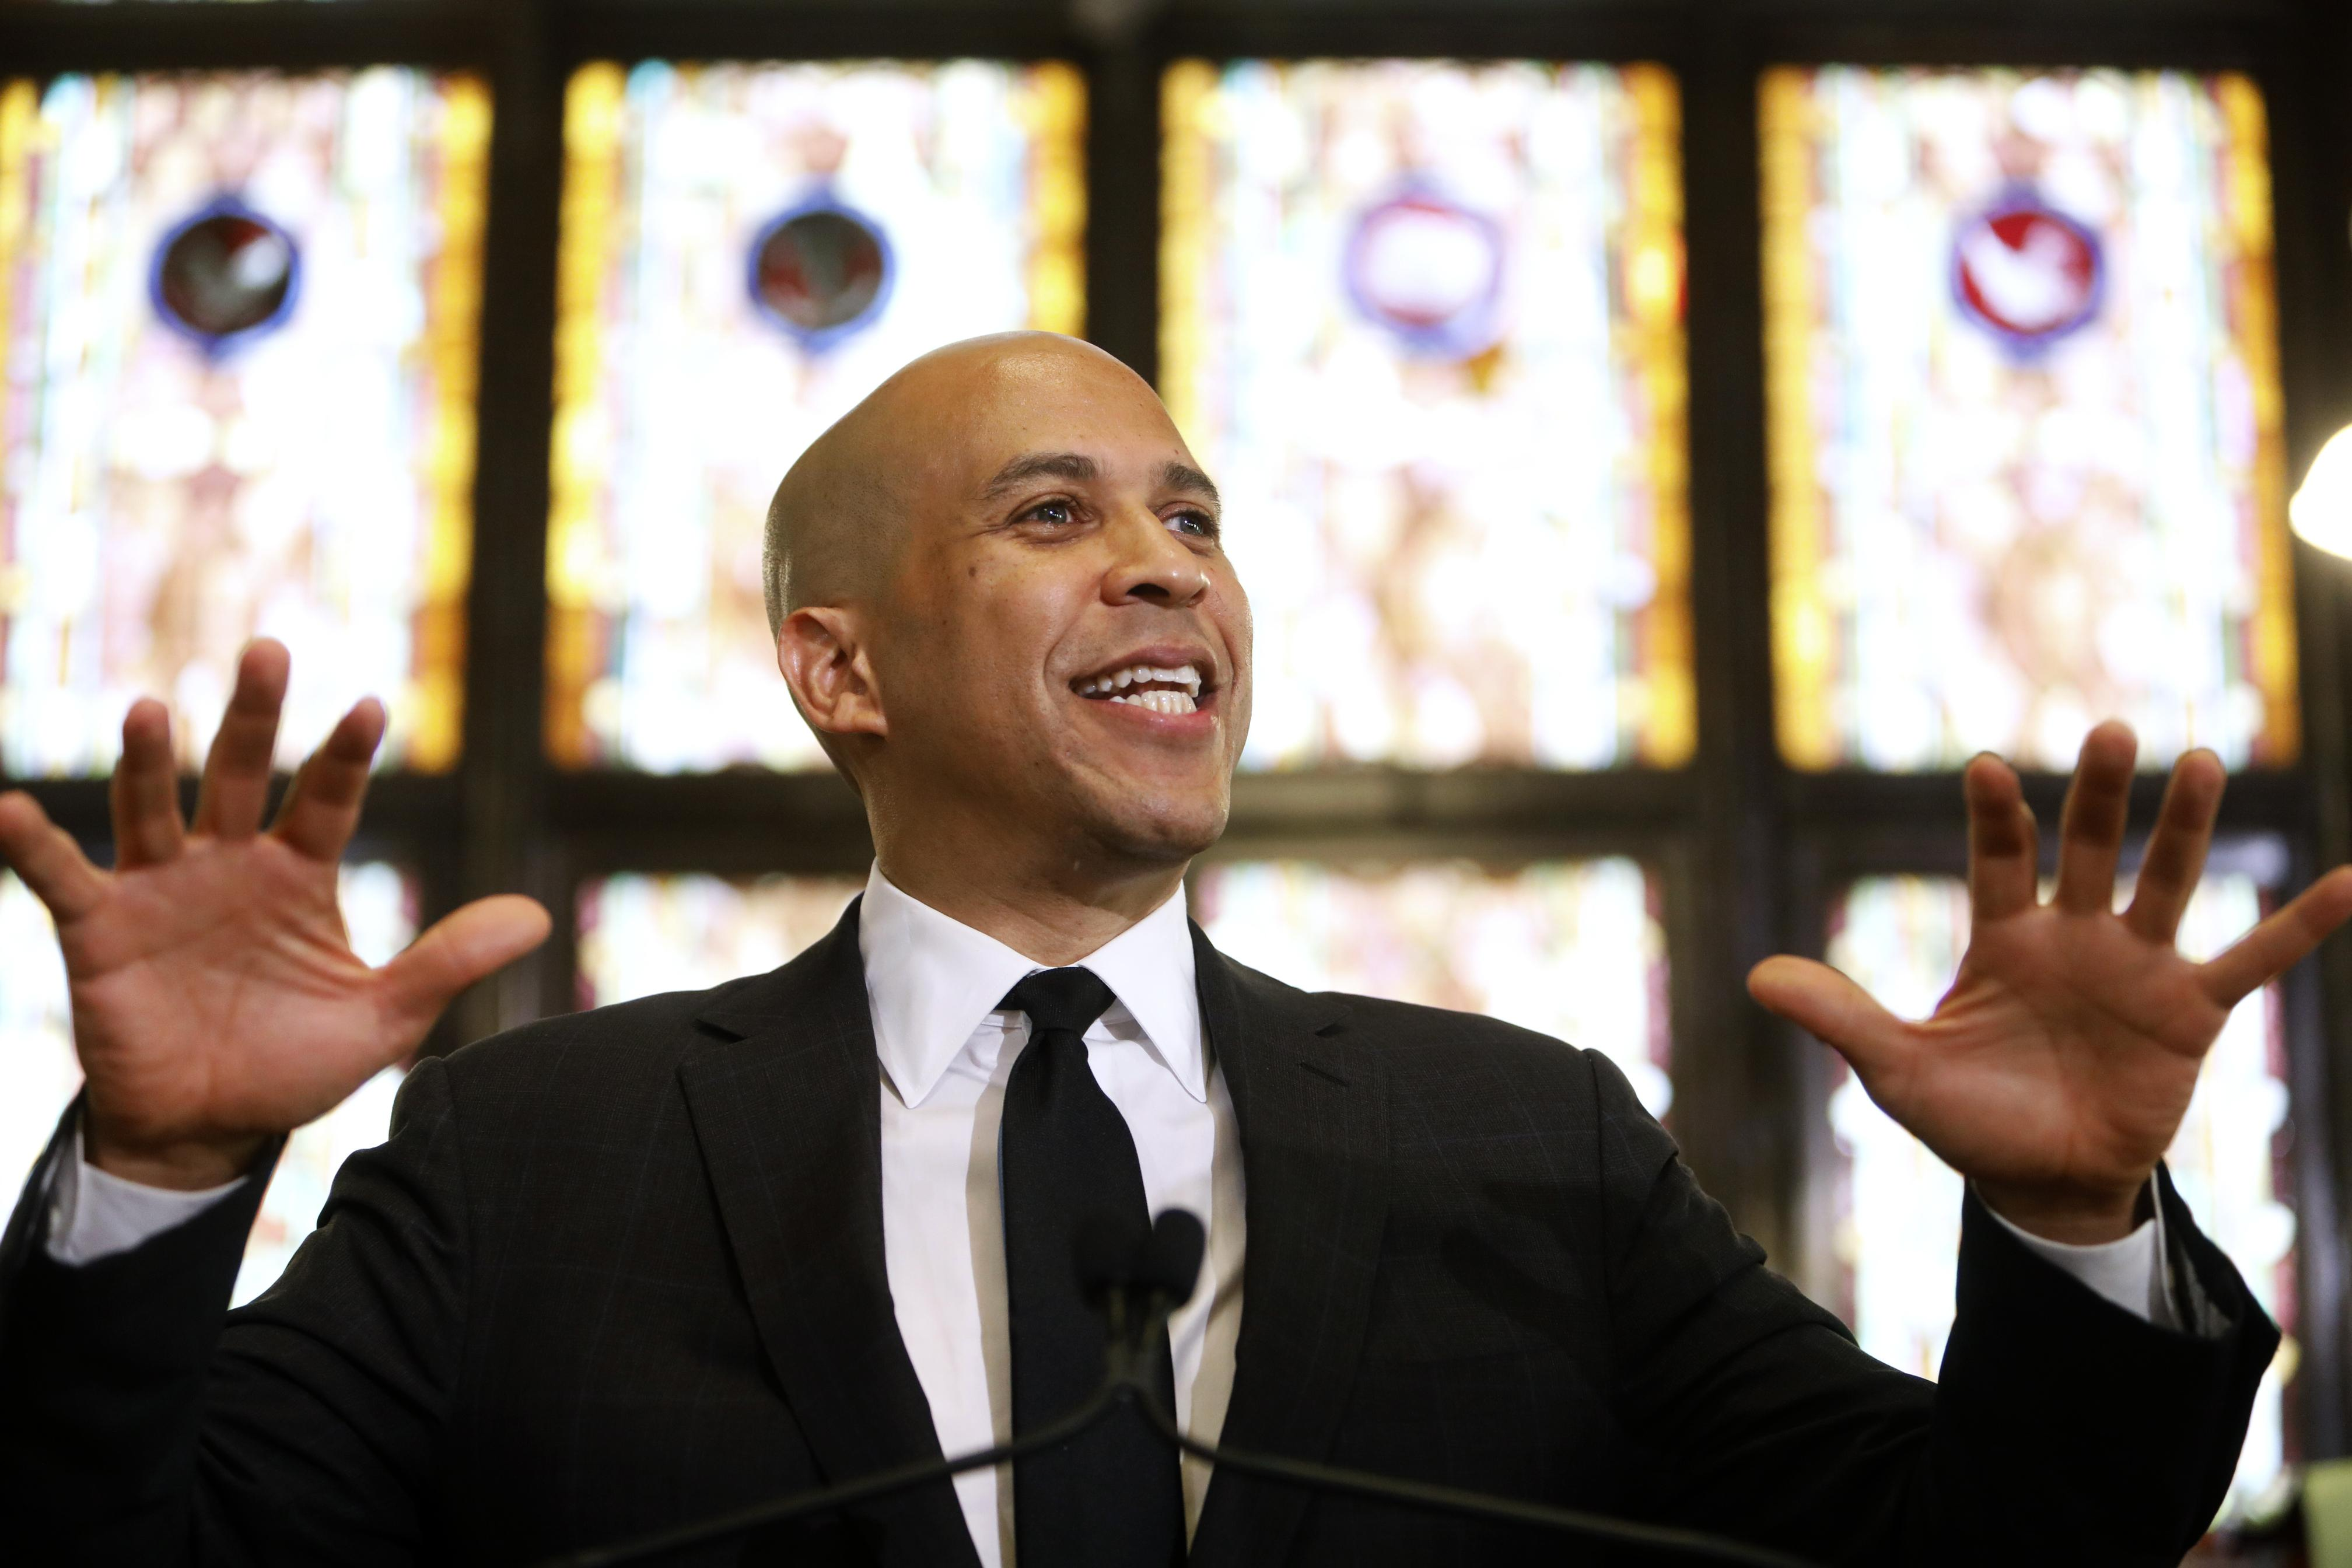 Cory Booker unveils plan to combat hate crimes, white supremacist viol